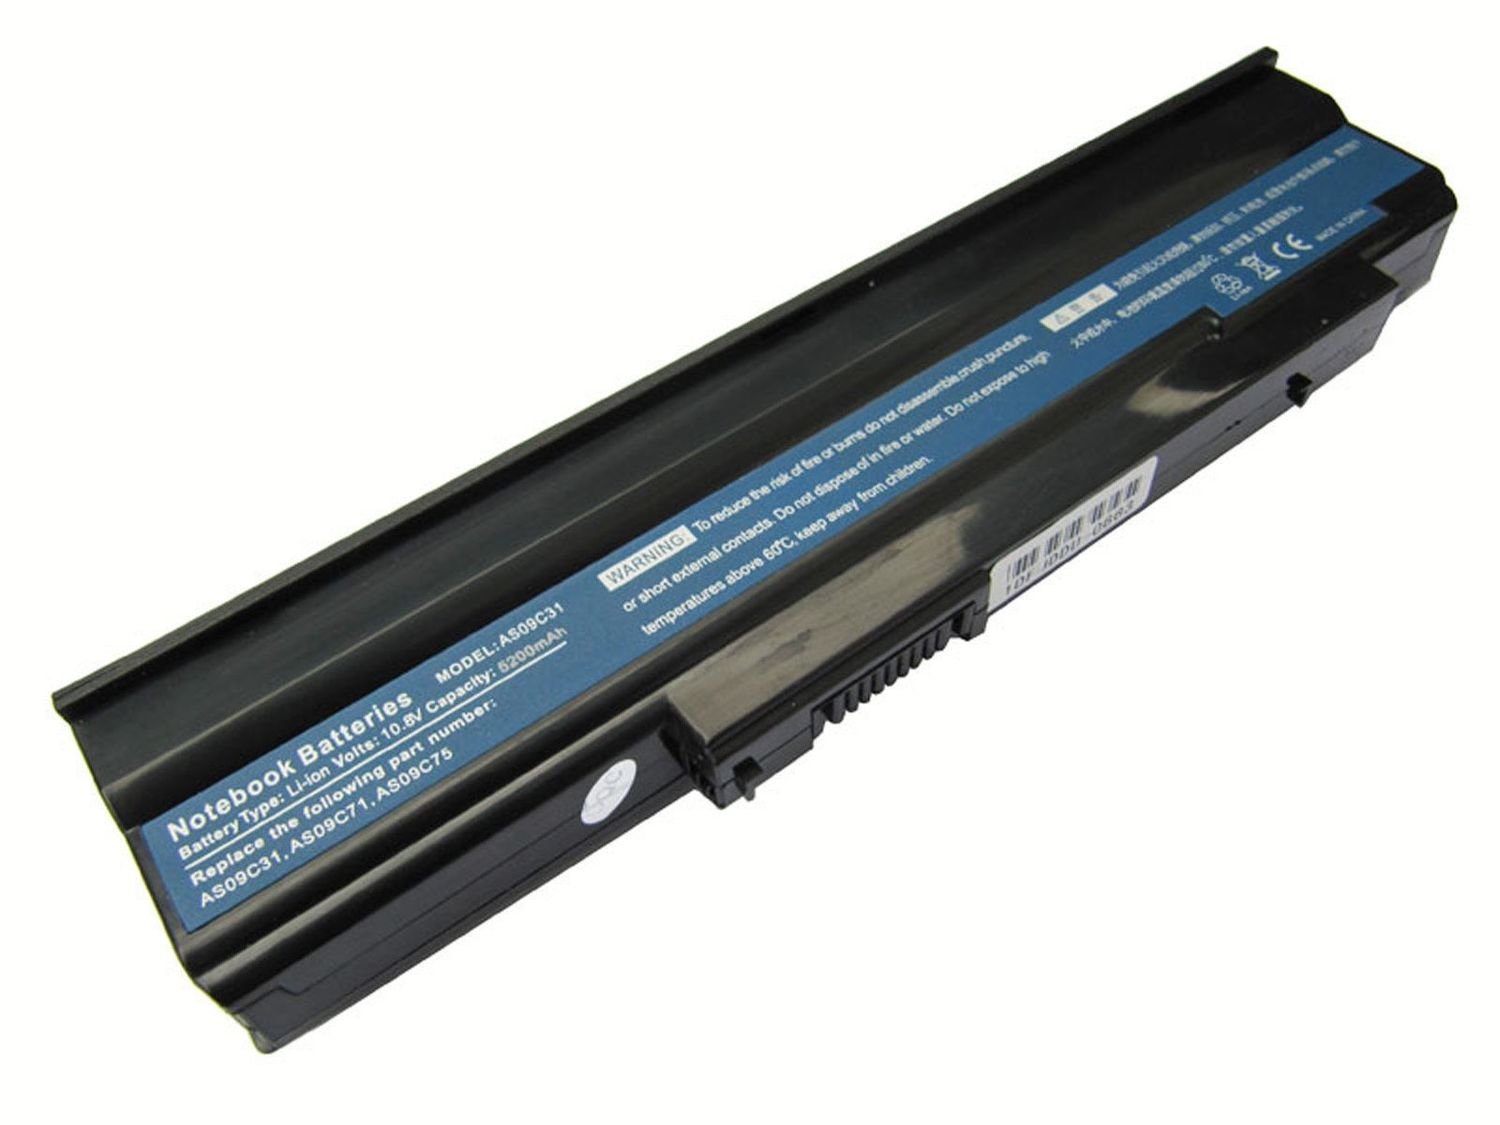 Acer eMachines E728-4830 compatible laptop battery